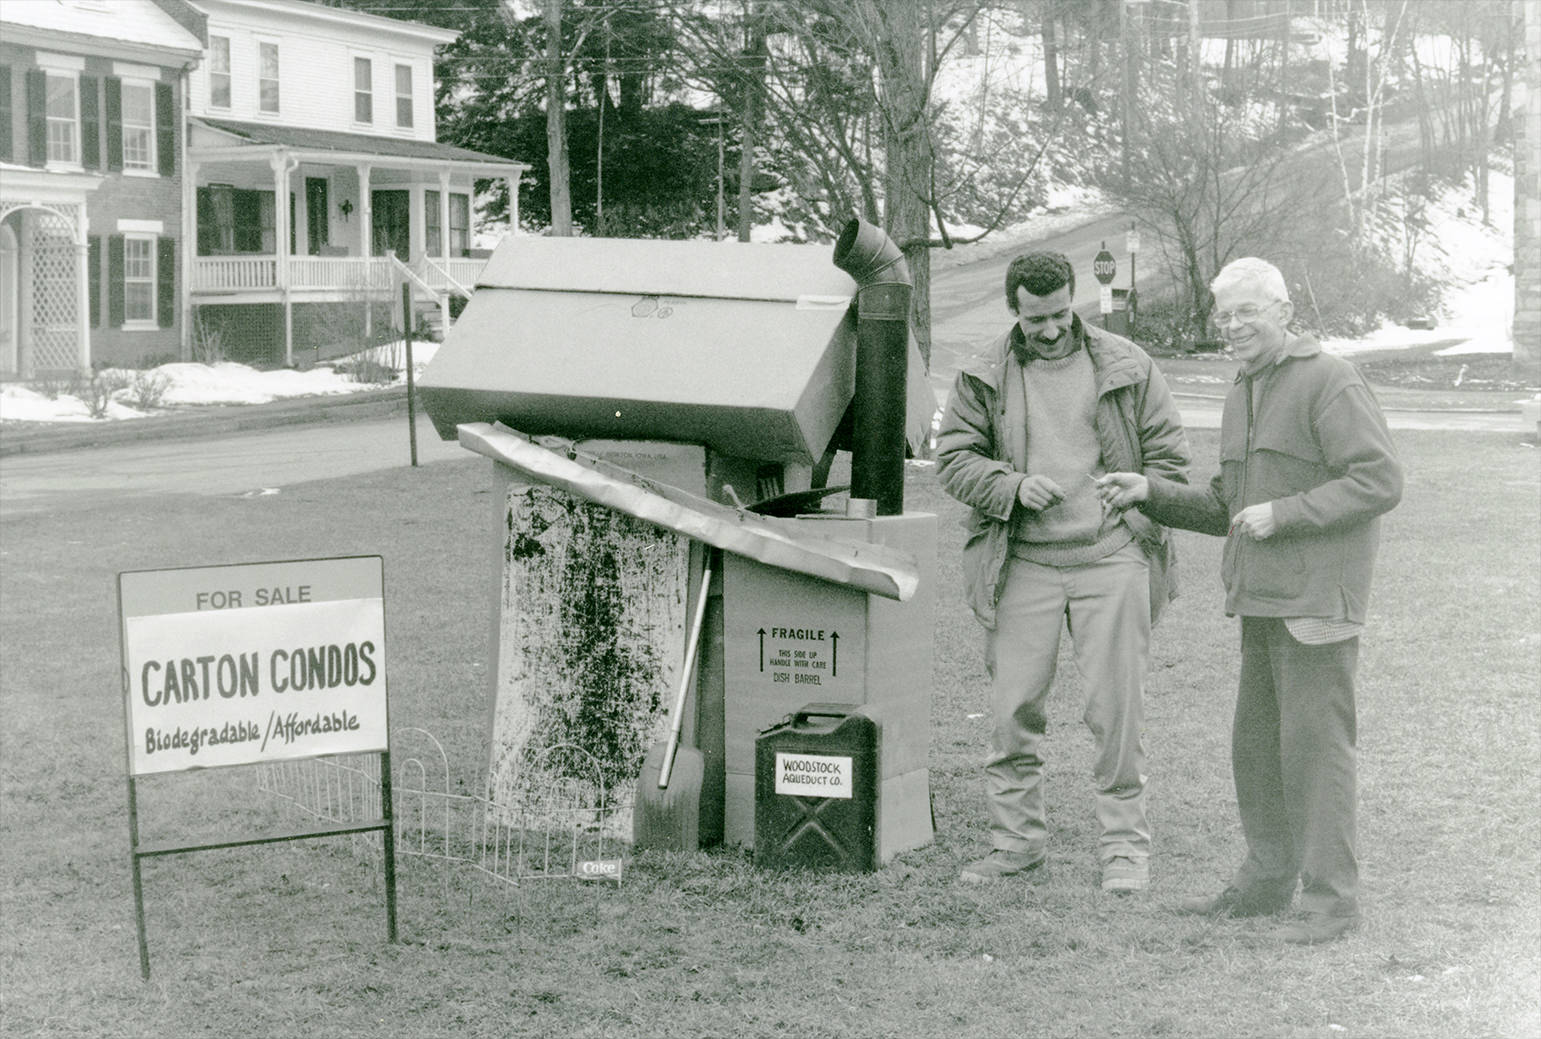 Frank selling biodegradable, affordable condos